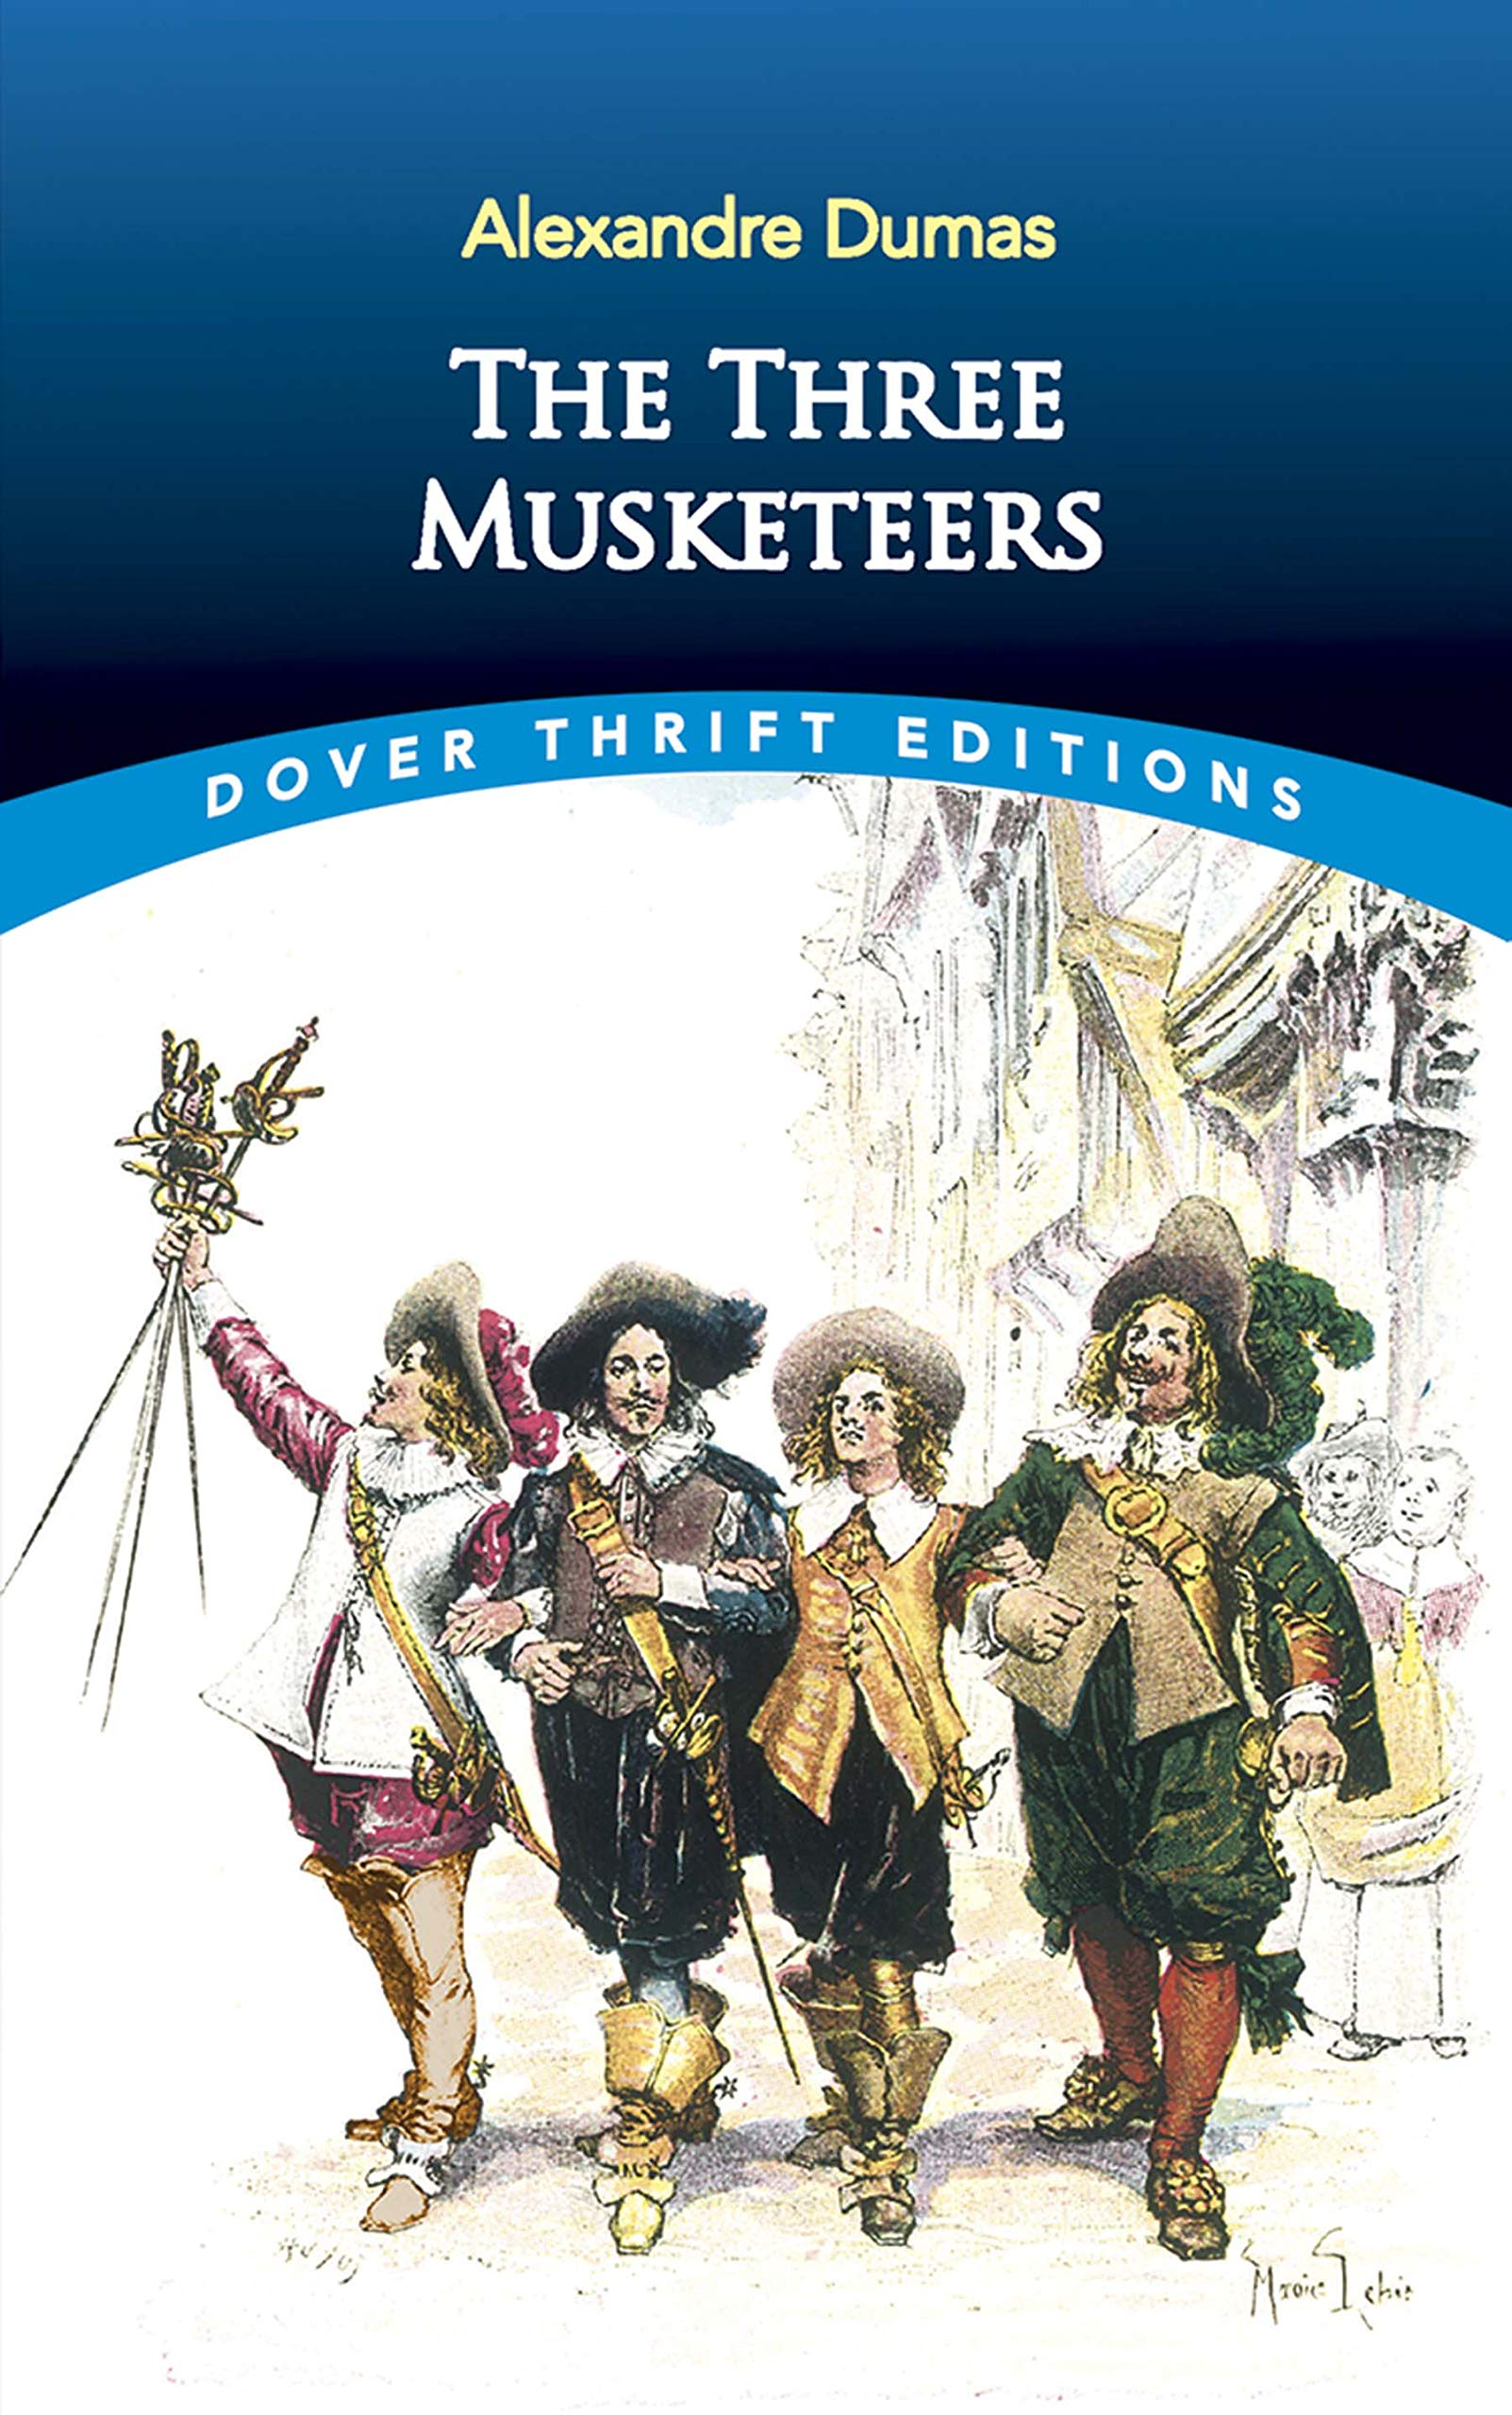 Vintage art prints Gifts for readers Literature illustration prints Classic literature art prints The three musketeers